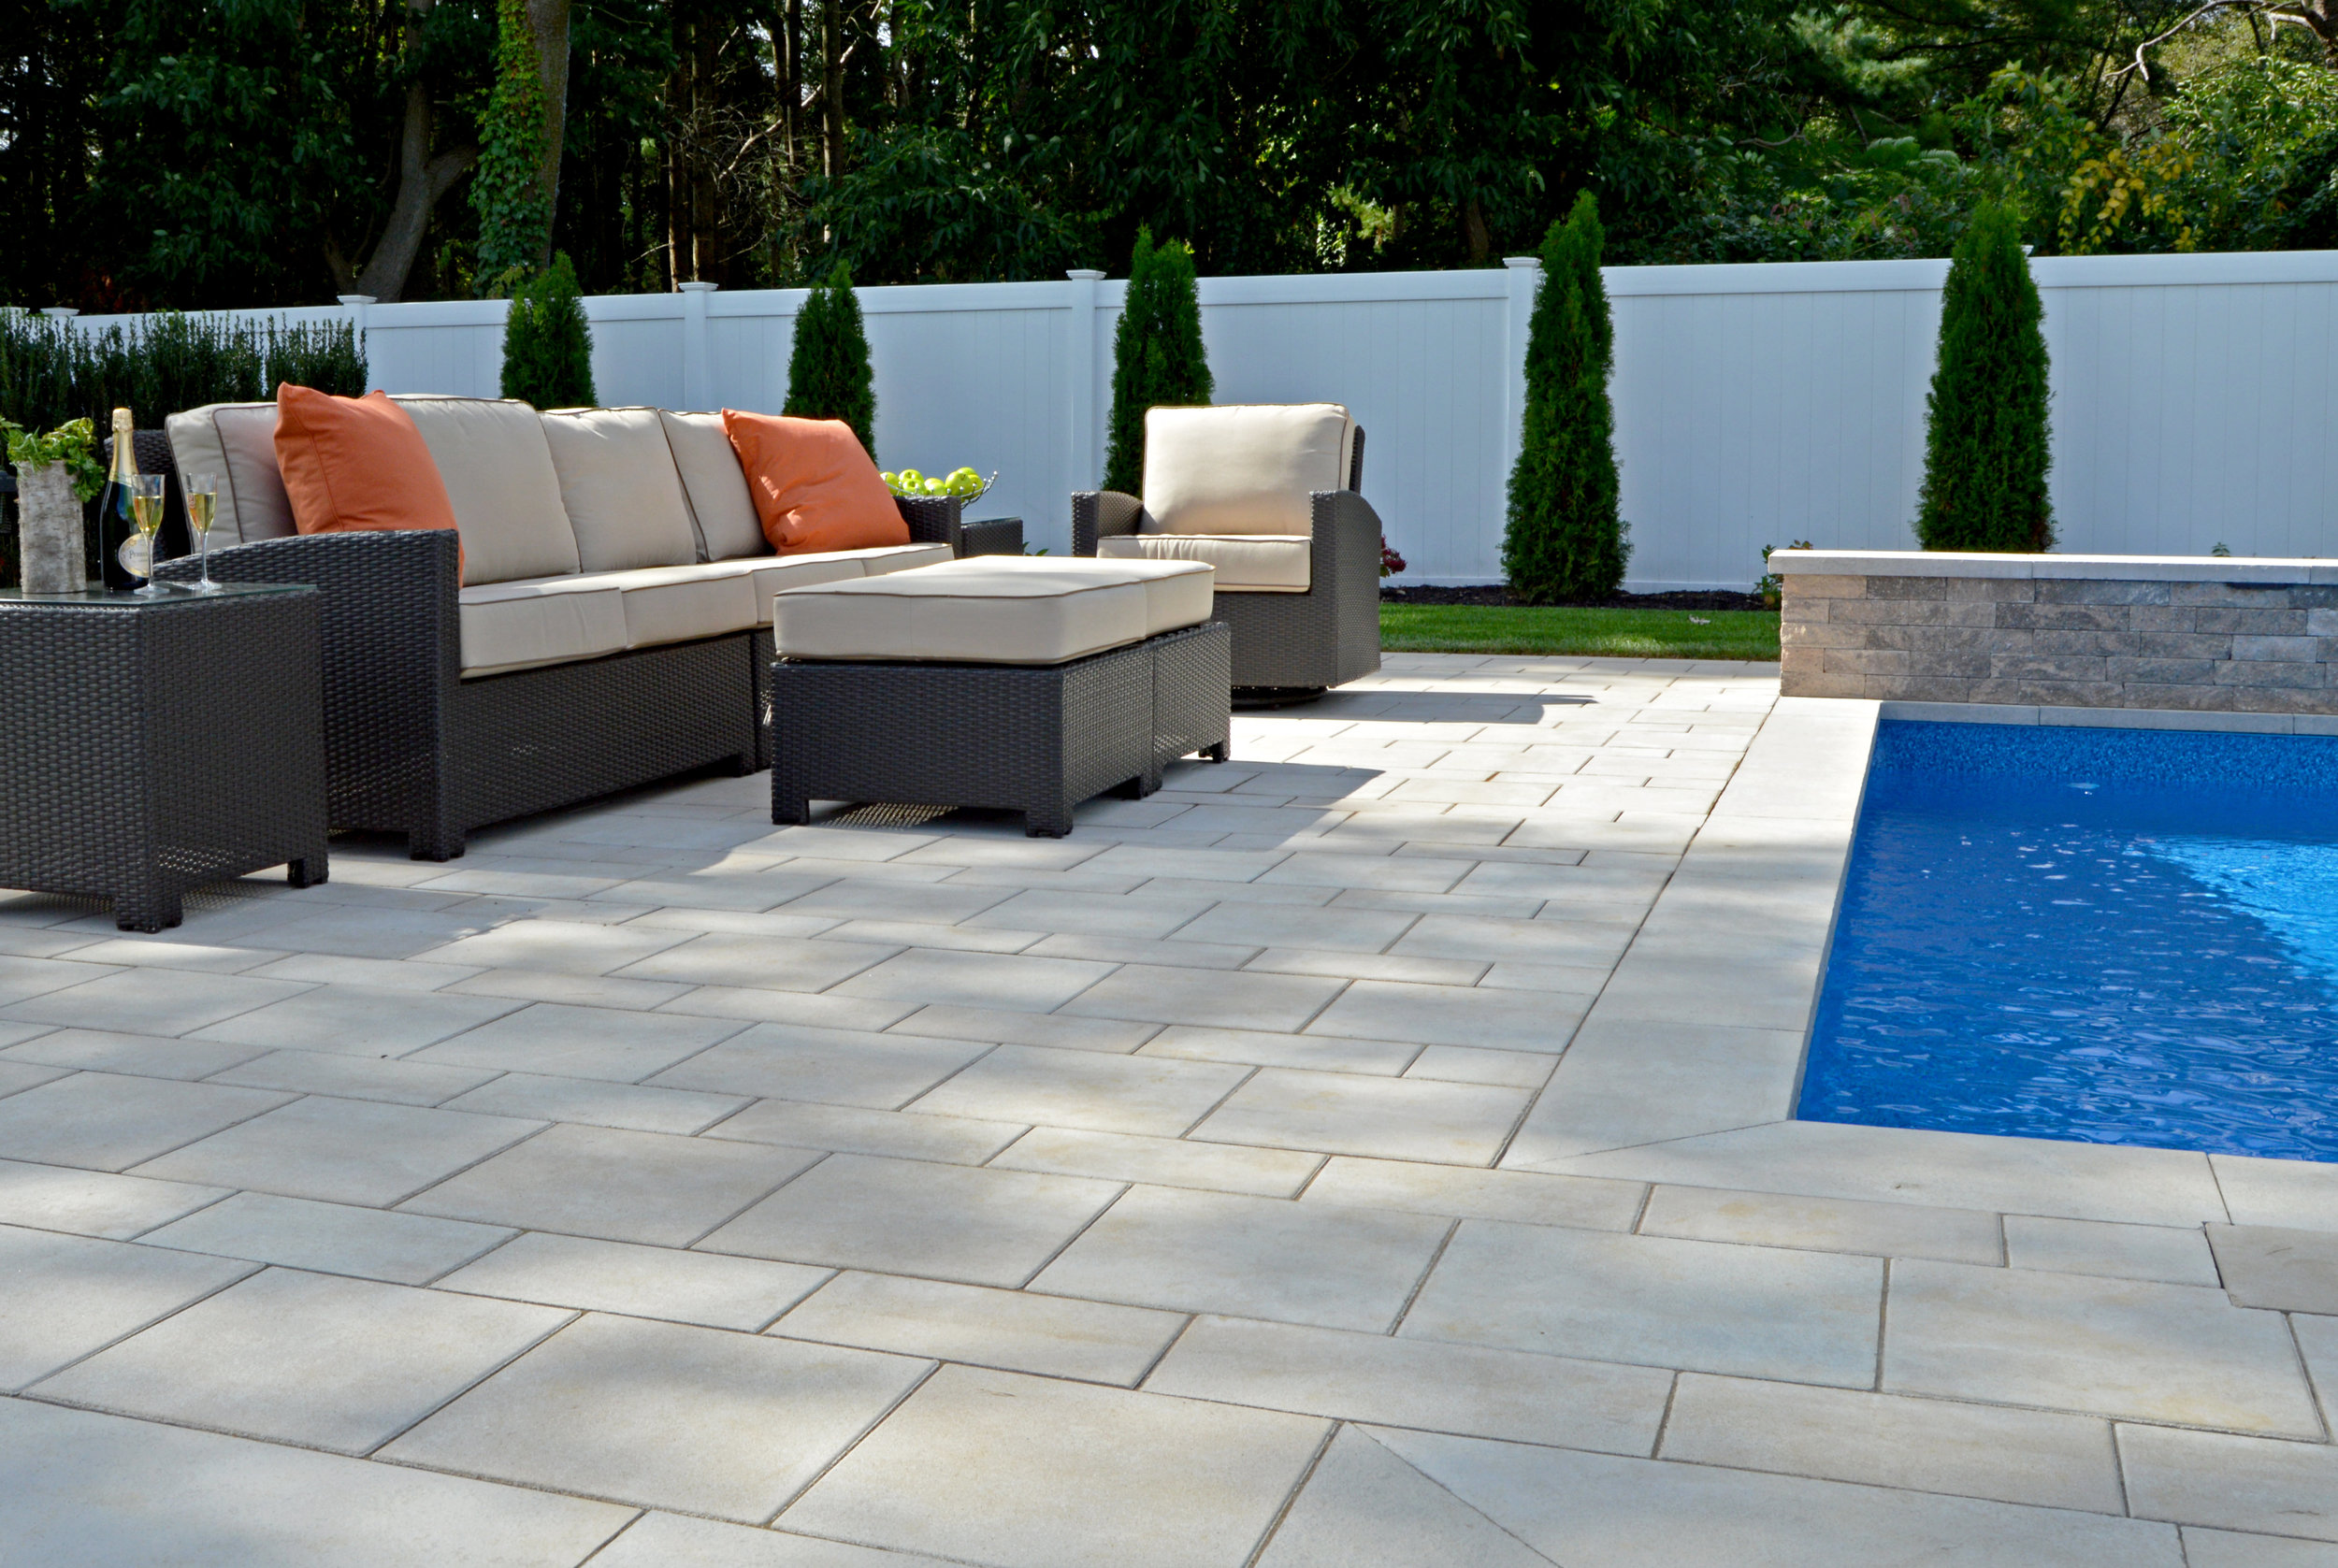 Smithtown, NY patio design